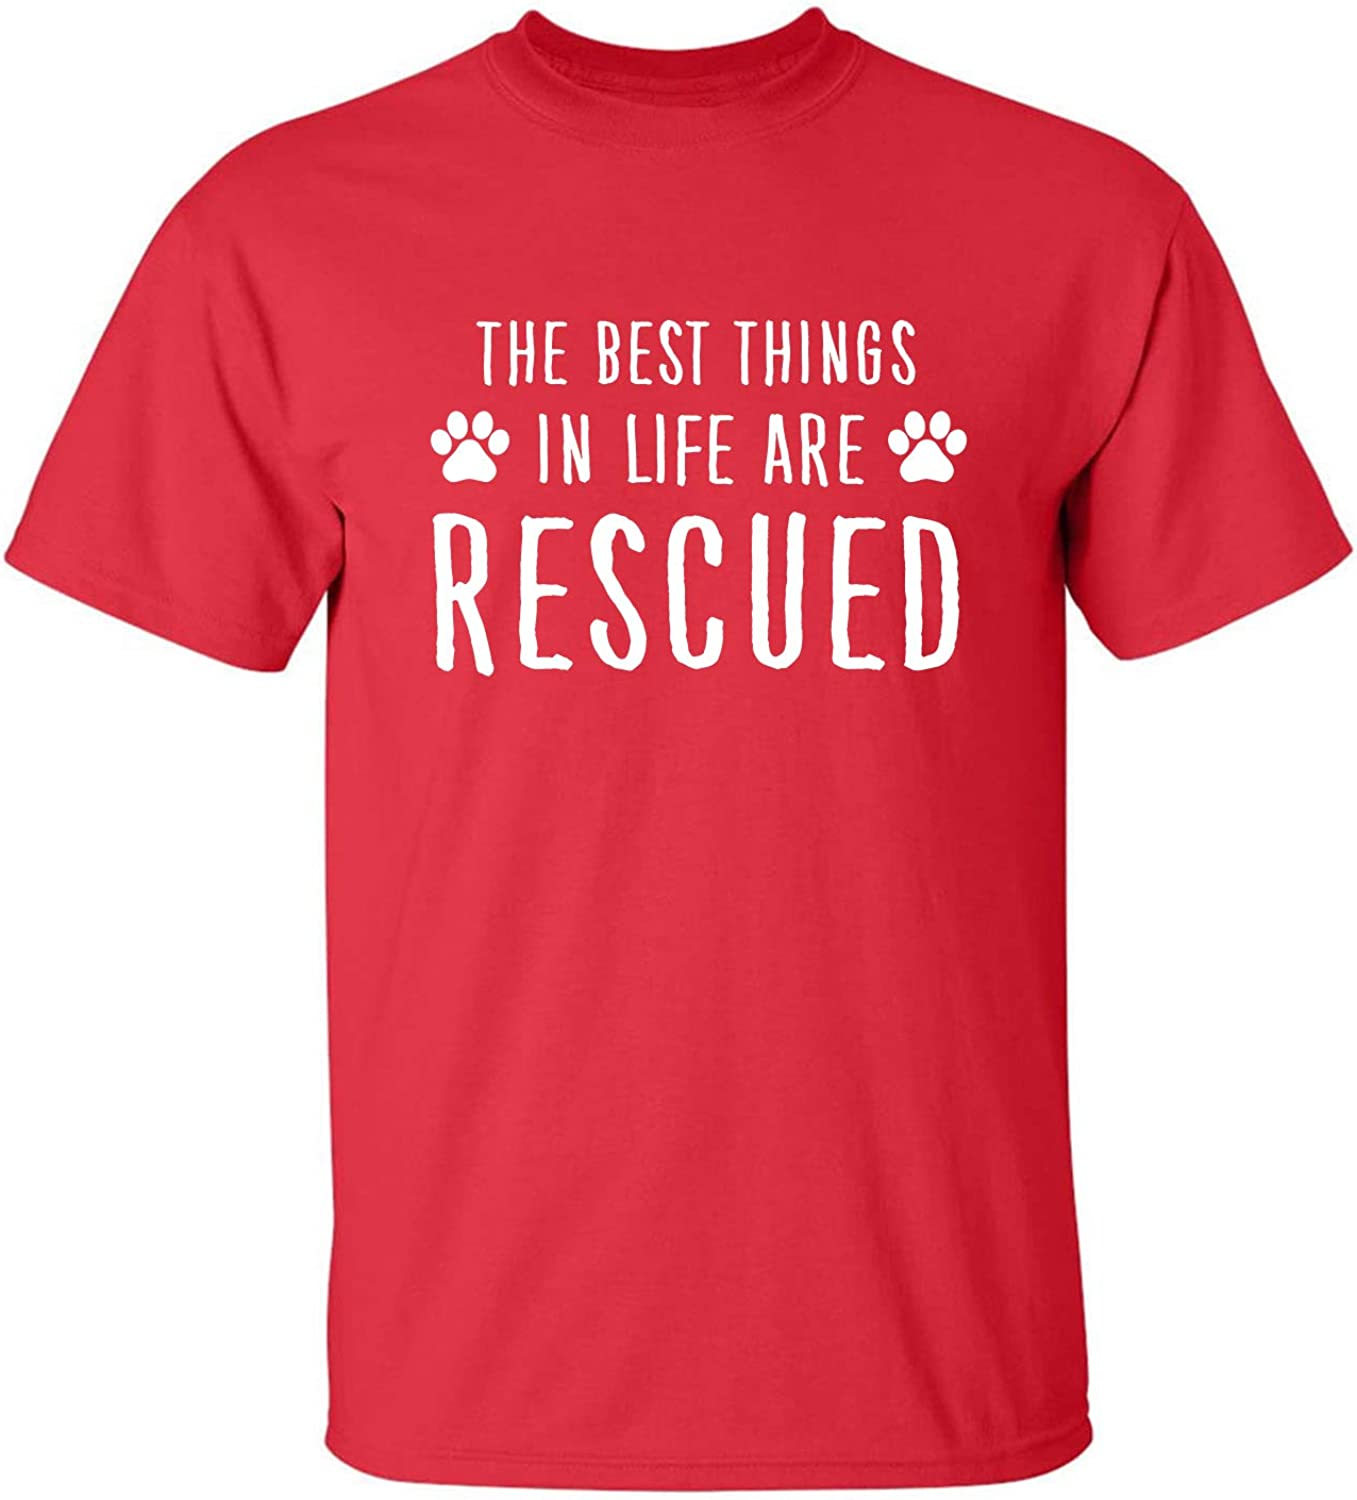 Best Things in Life are Rescued Adult T-Shirt in Red - XXXXX-Large